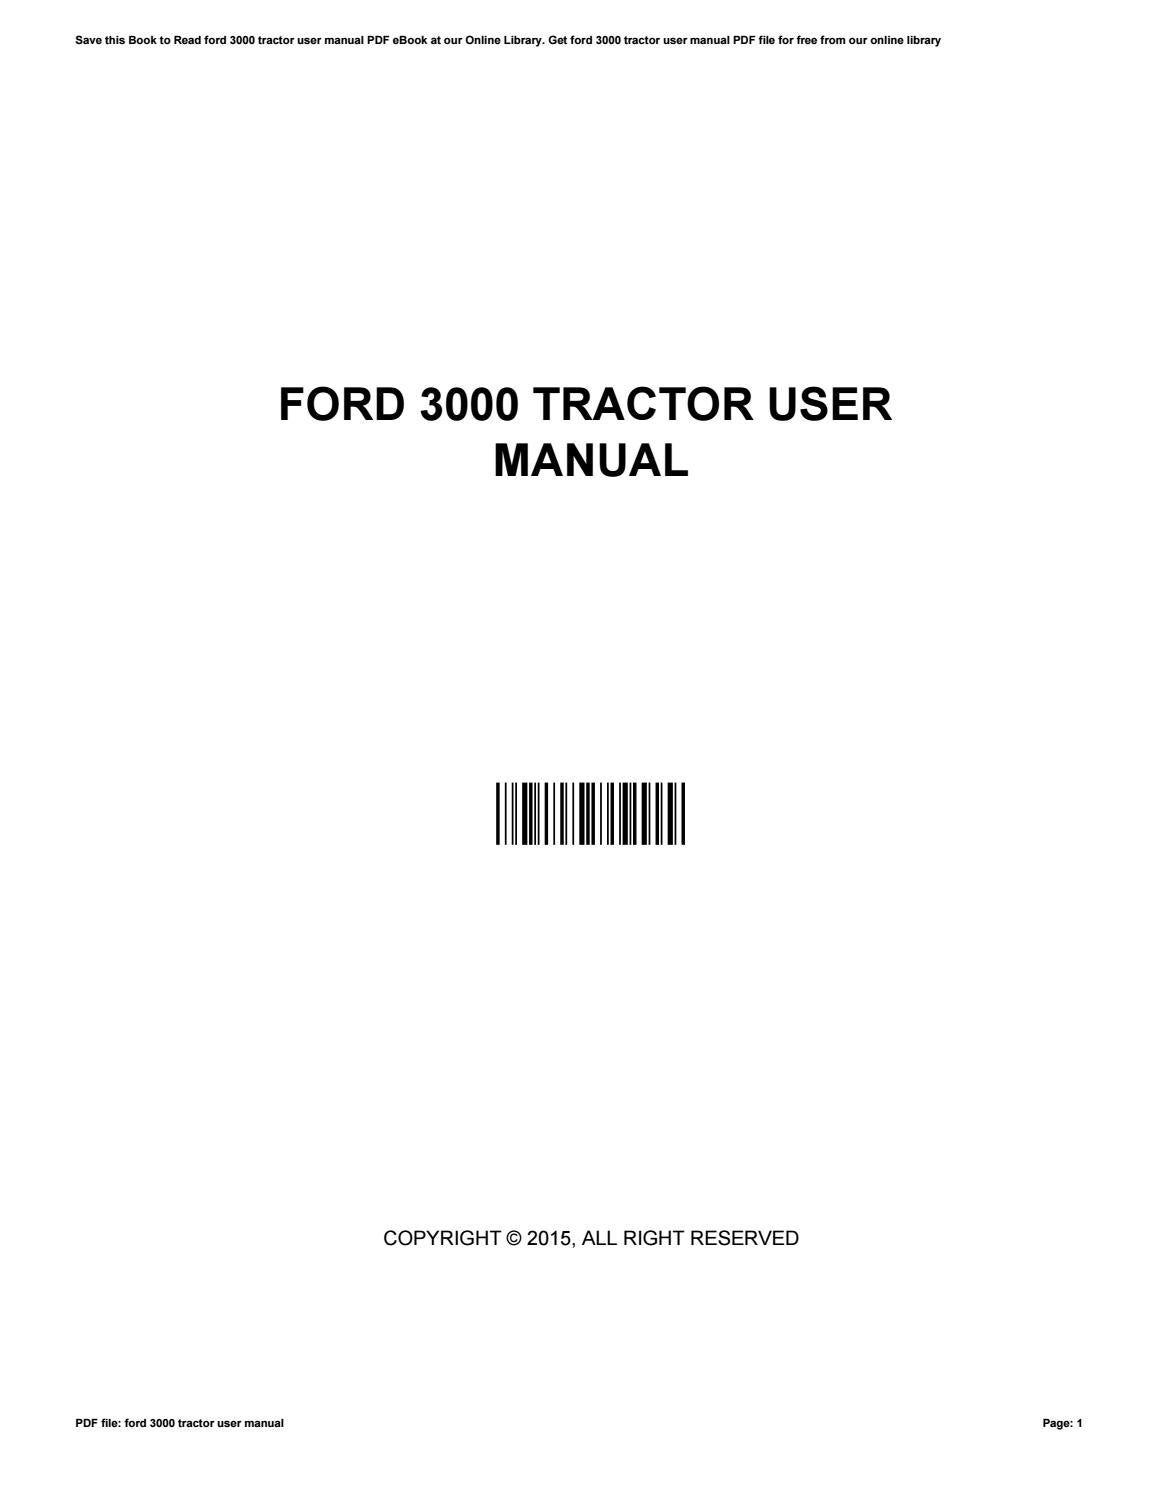 Ford 3000 Tractor Manual Instrument Panel Wiring Diagram Free Picture User Claytoncruz Issuu 1156x1496